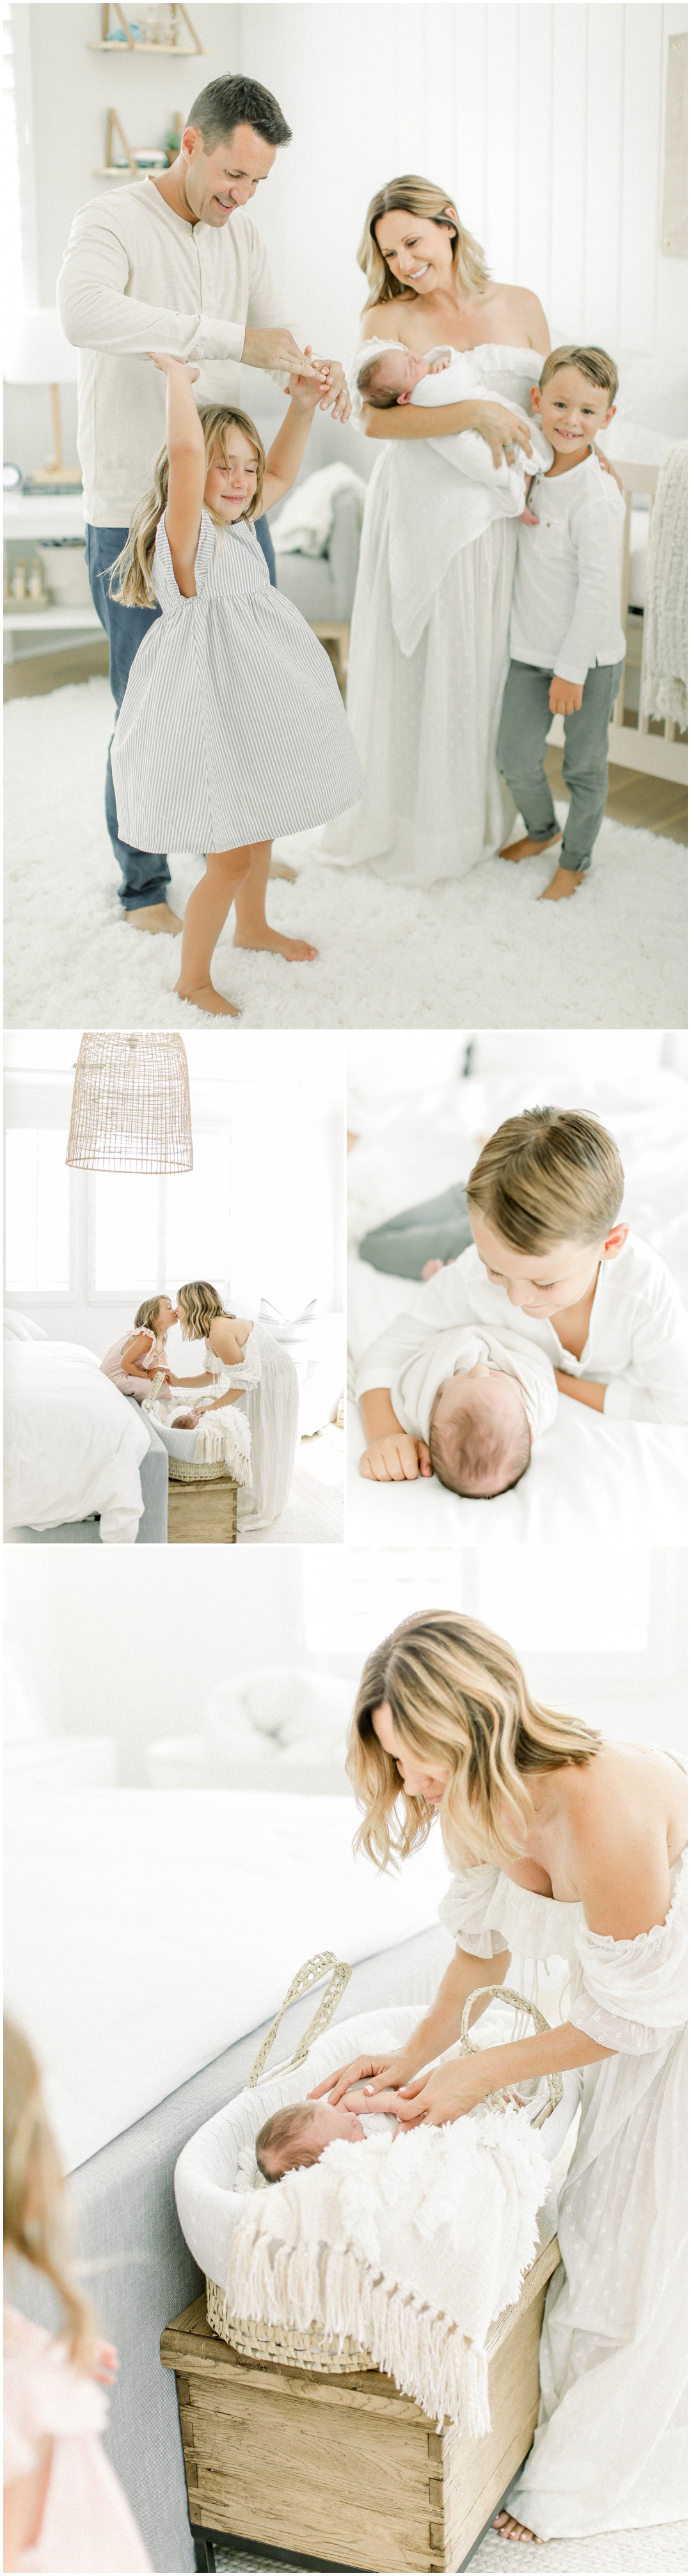 Newport+Beach+Newborn+Photographer+Orange+County+Family+Photographer+Cori+Kkleckner+Photography+The+Murray+Family+Adena+Murray_4372.jpg